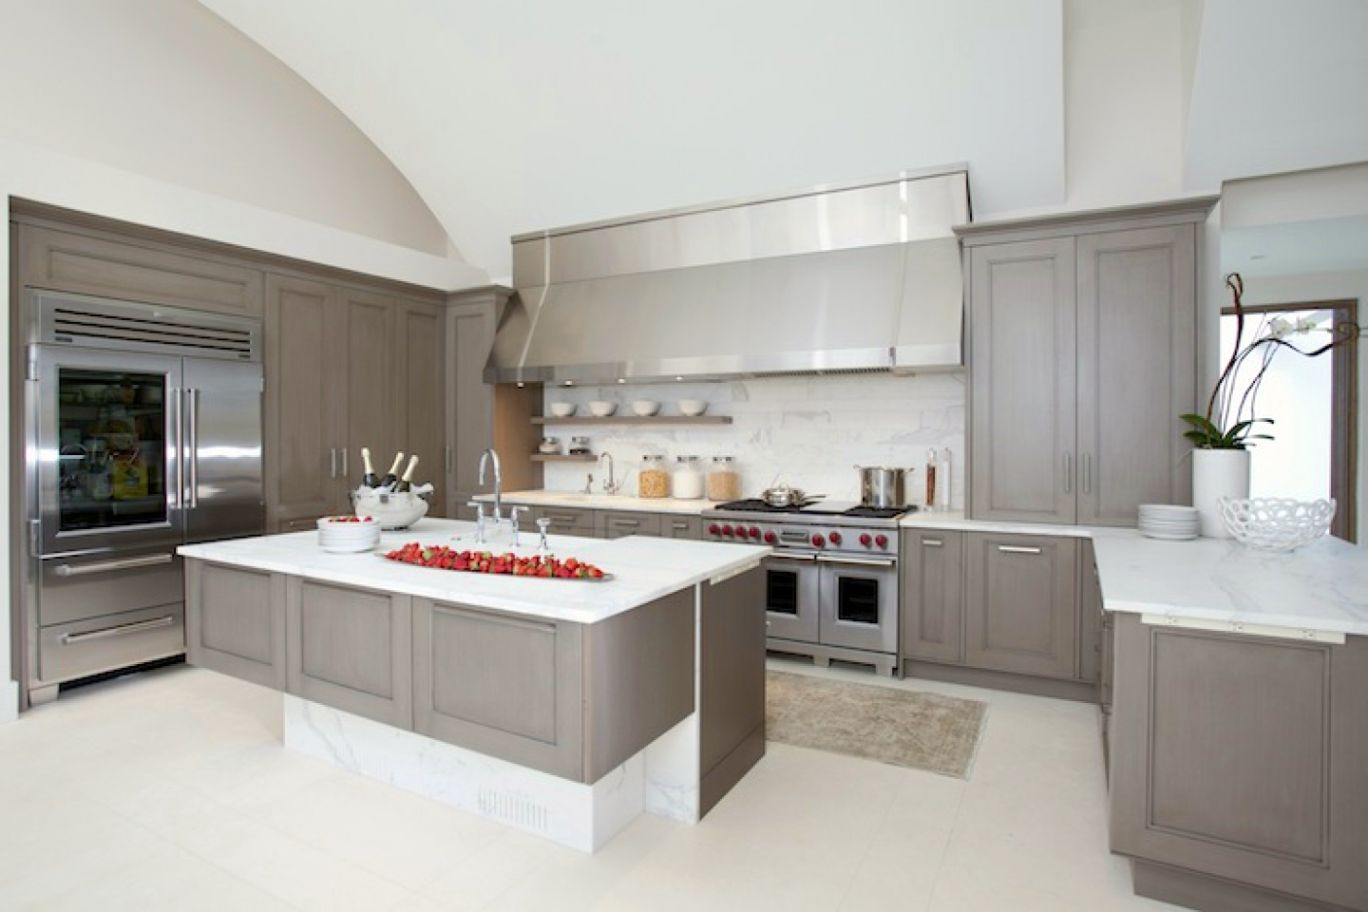 gray kitchen cabinets with white countertops gray kitchen cabinets Gray Kitchen Cabinets with White Countertop Minimalist